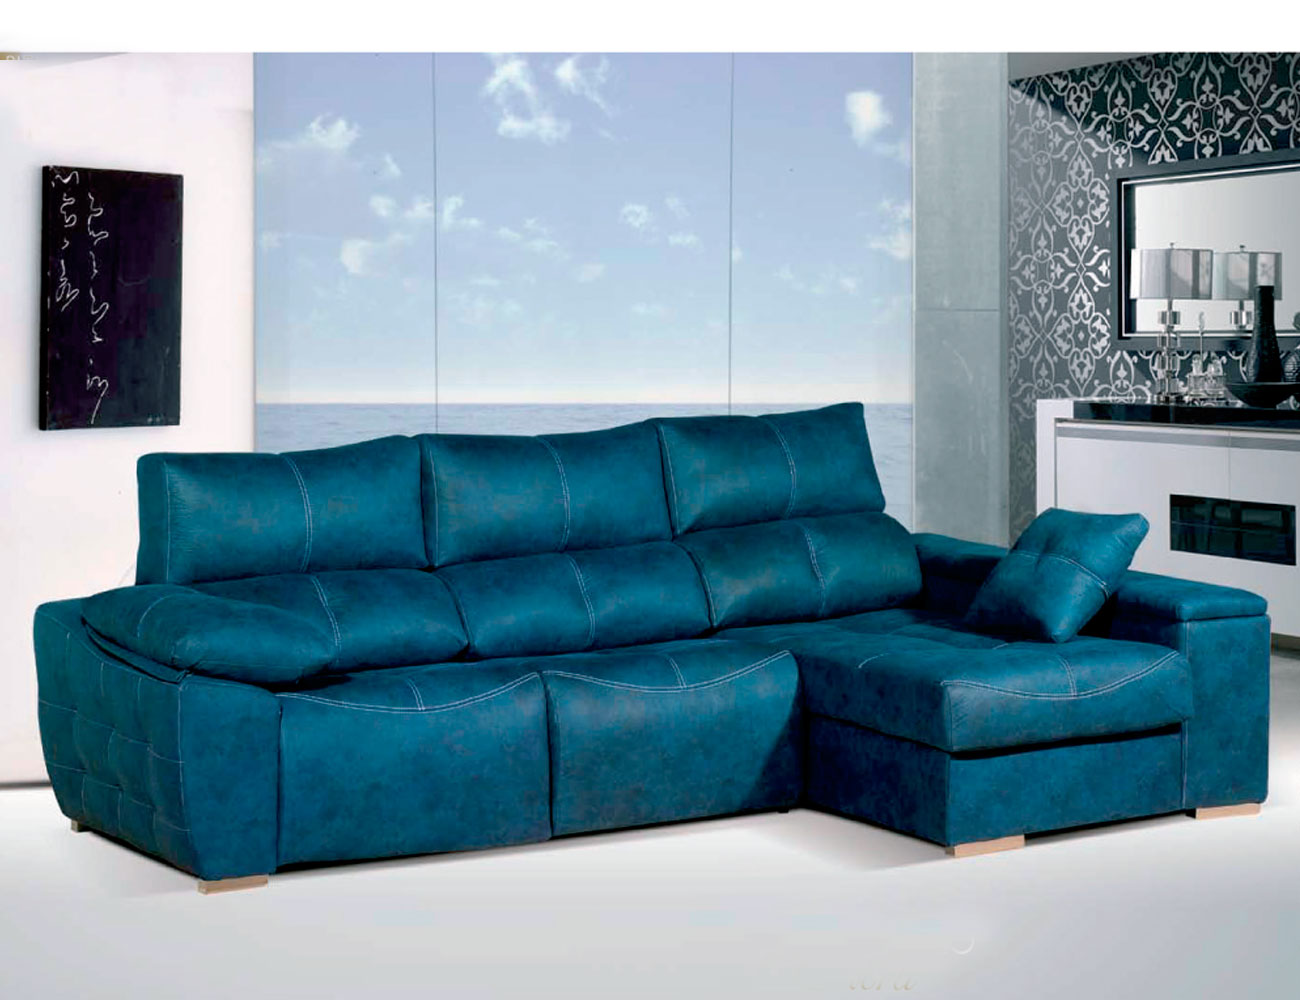 Sofa chaiselongue relax 2 motores anti manchas turquesa30